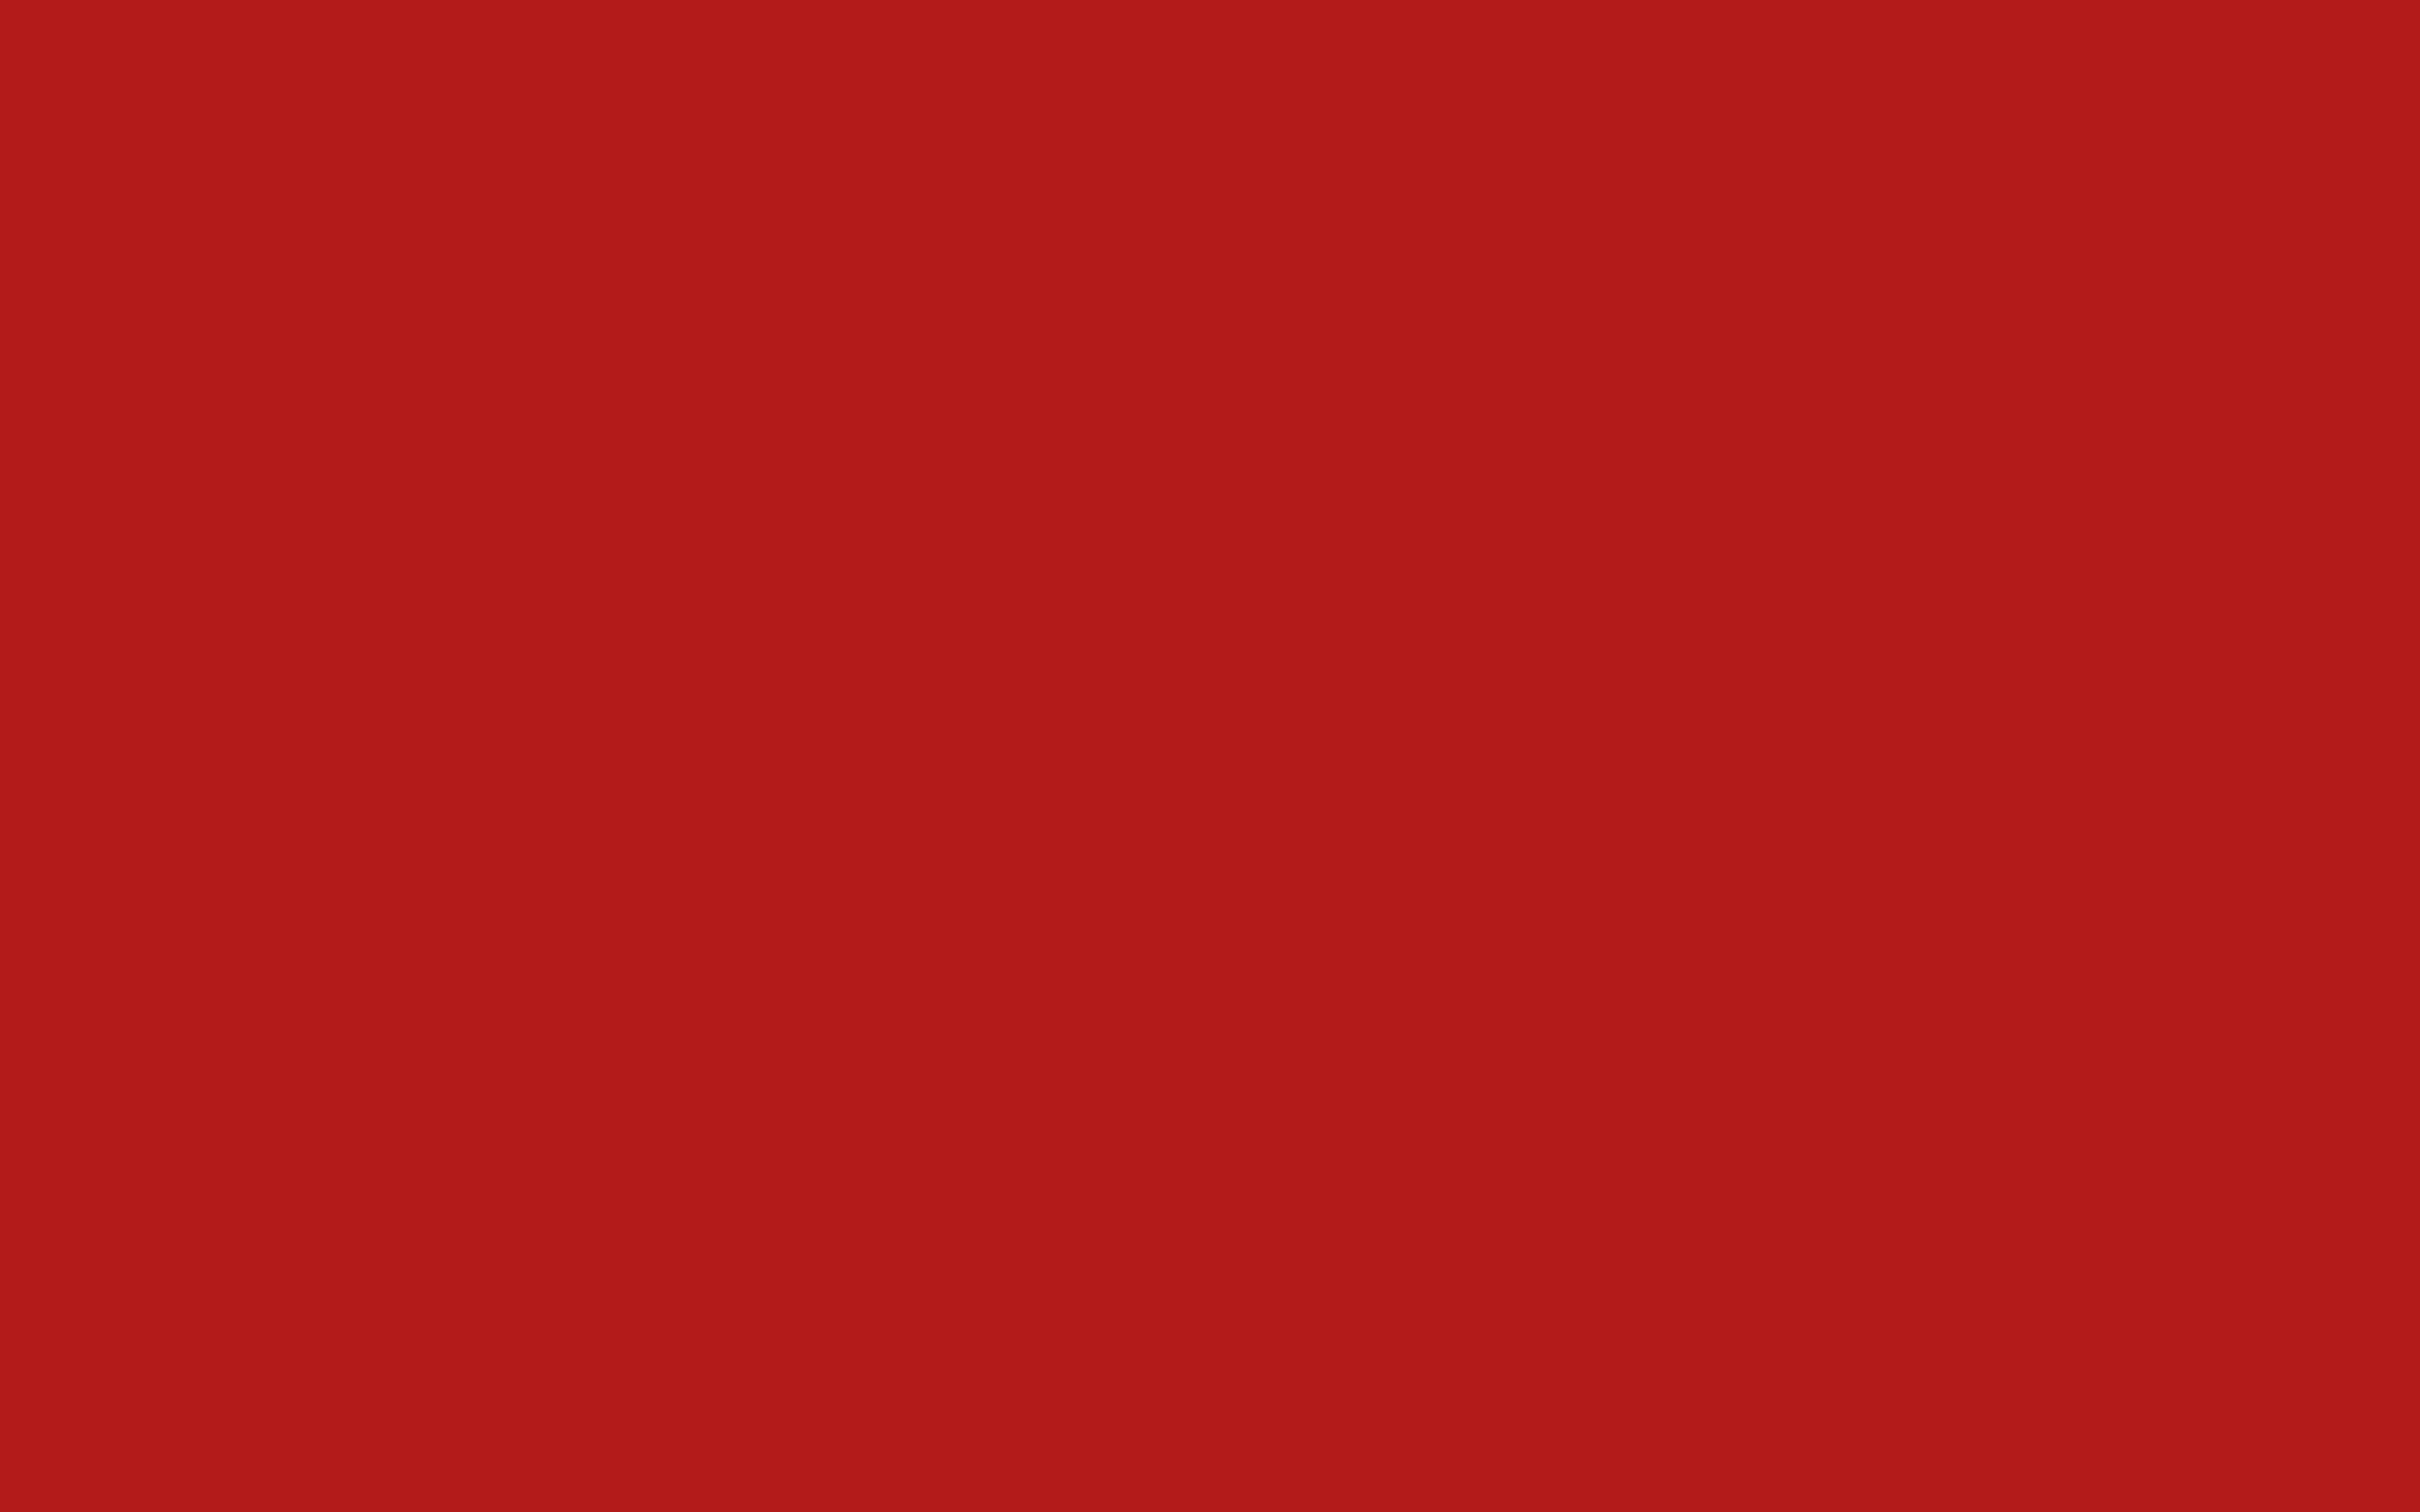 2560x1600 background, color, solid, red, cornell, images